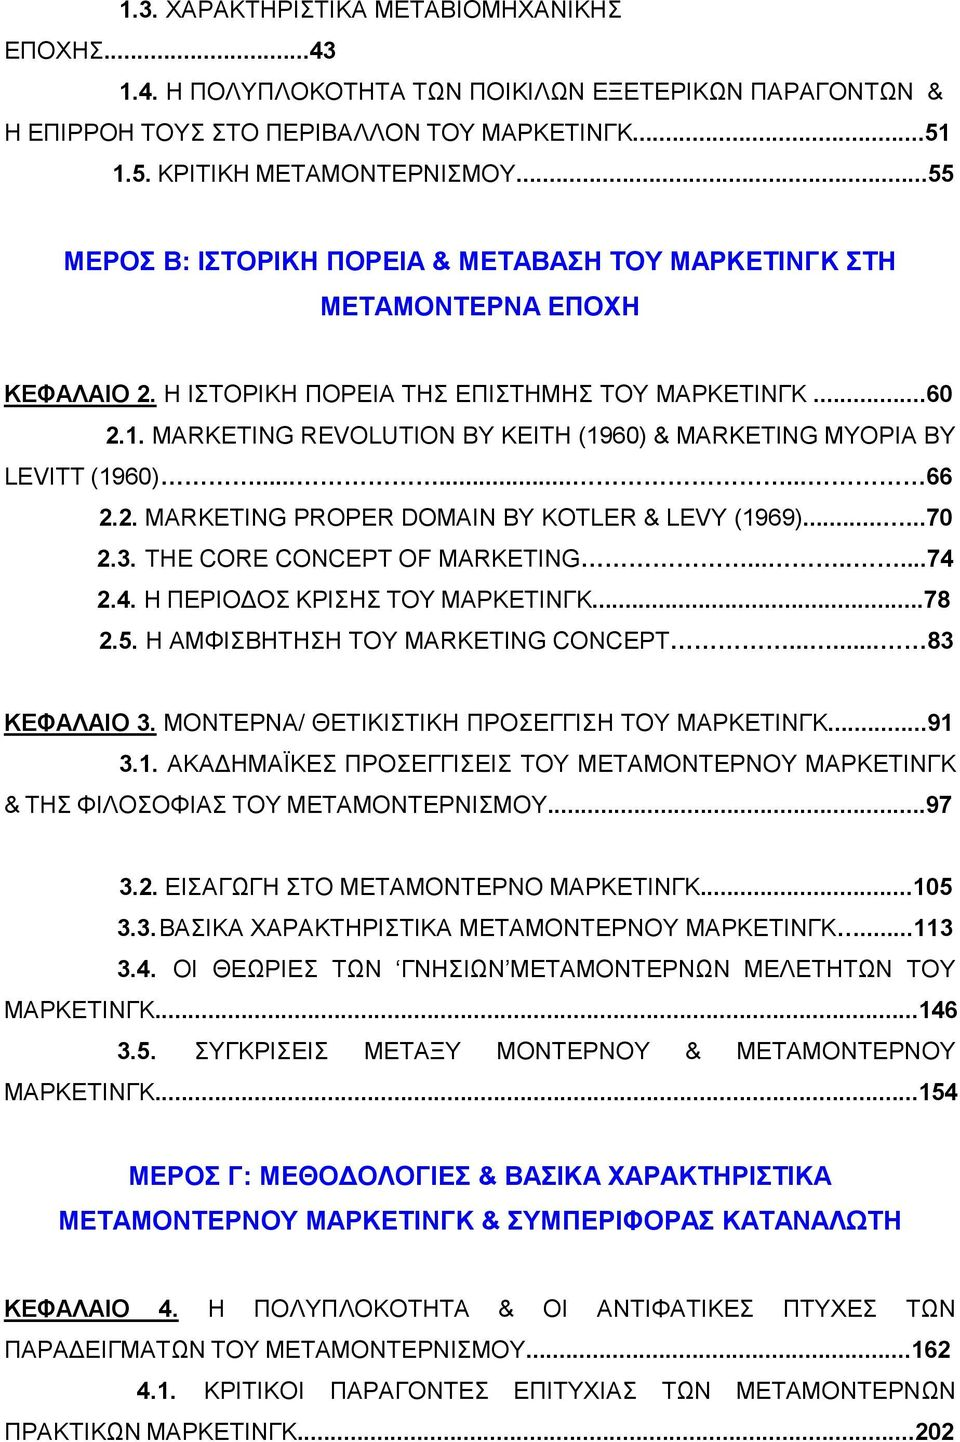 MARKETING REVOLUTION BY KEITH (1960) & MARKETING MYOPIA BY LEVITT (1960)......... 66 2.2. MARKETING PROPER DOMAIN BY KOTLER & LEVY (1969)......70 2.3. THE CORE CONCEPT OF MARKETING........74